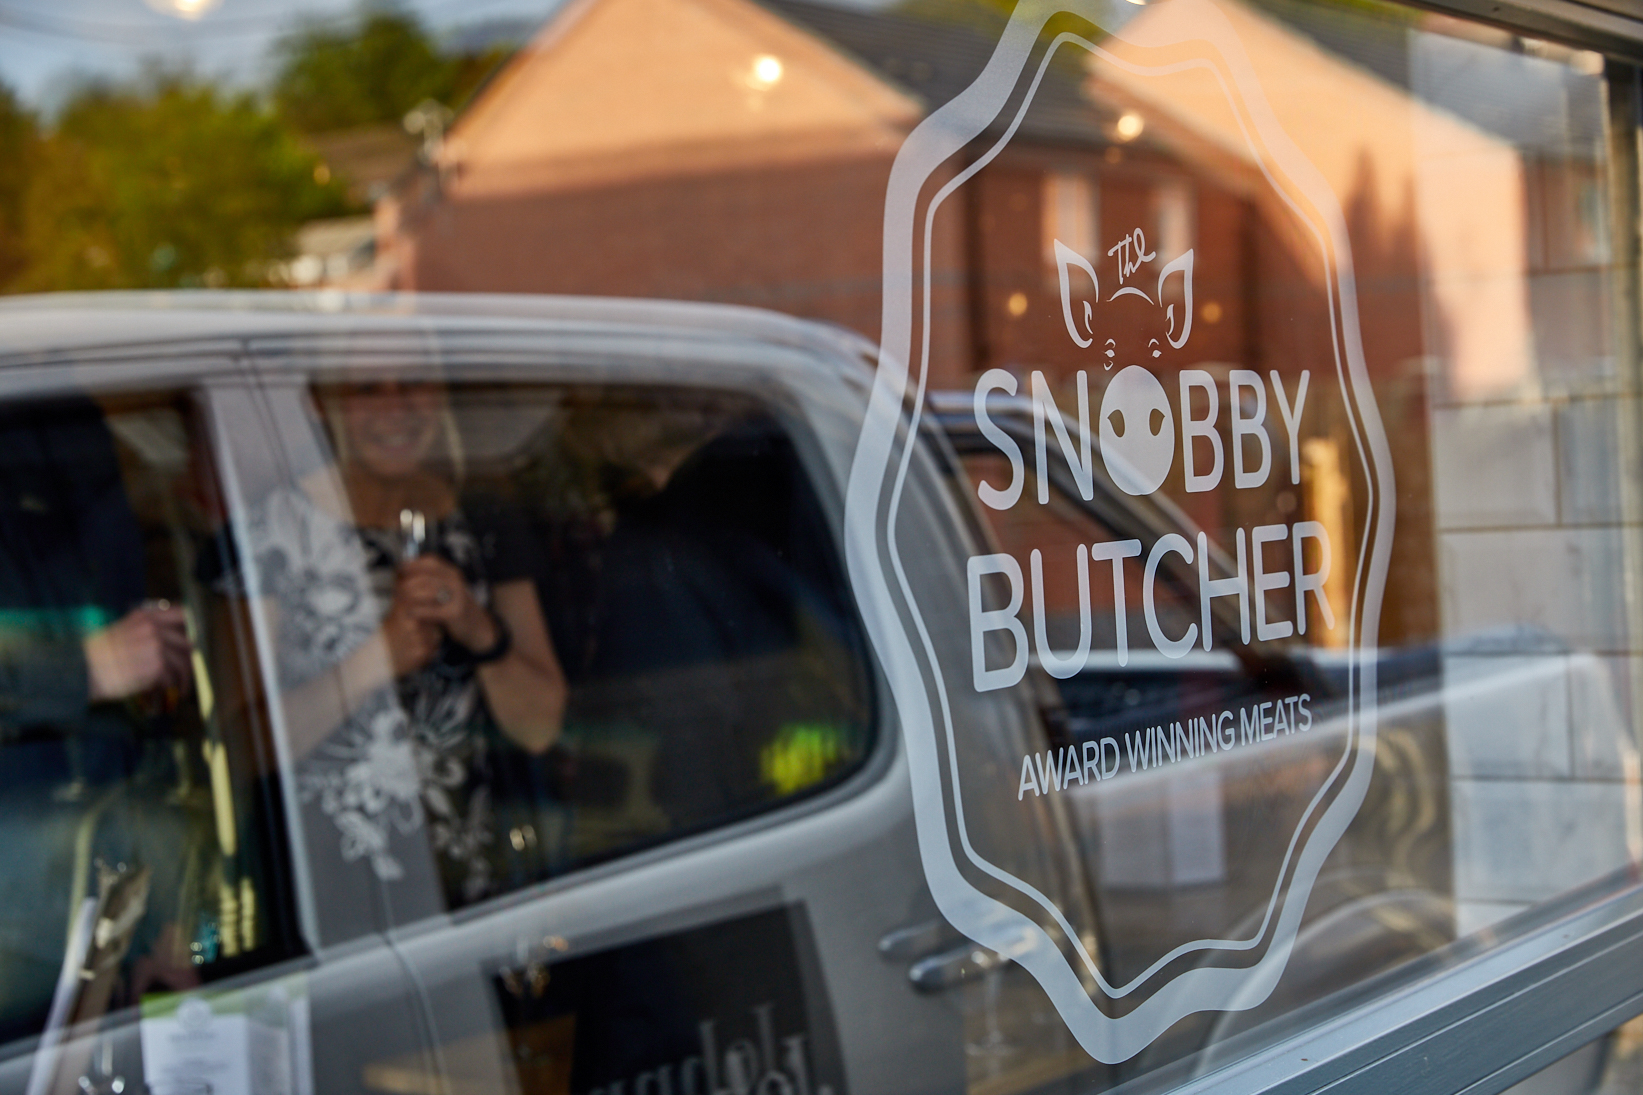 Snobby Butcher Logo on Window